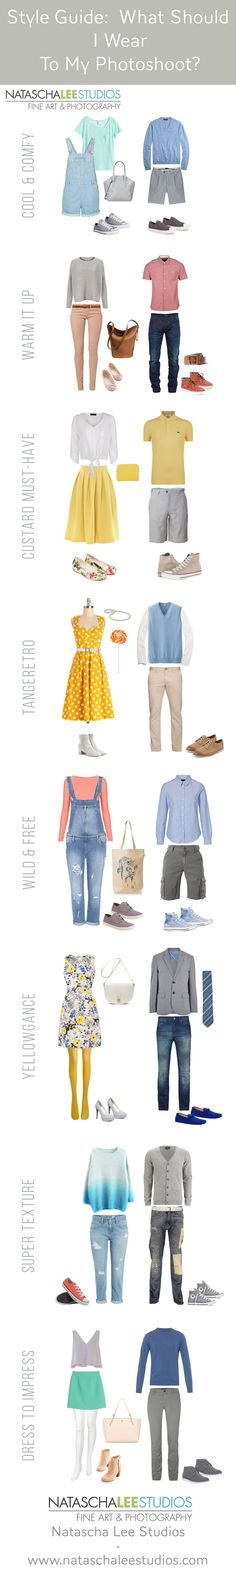 What to wear for summer family portraits by Natascha Lee Studios